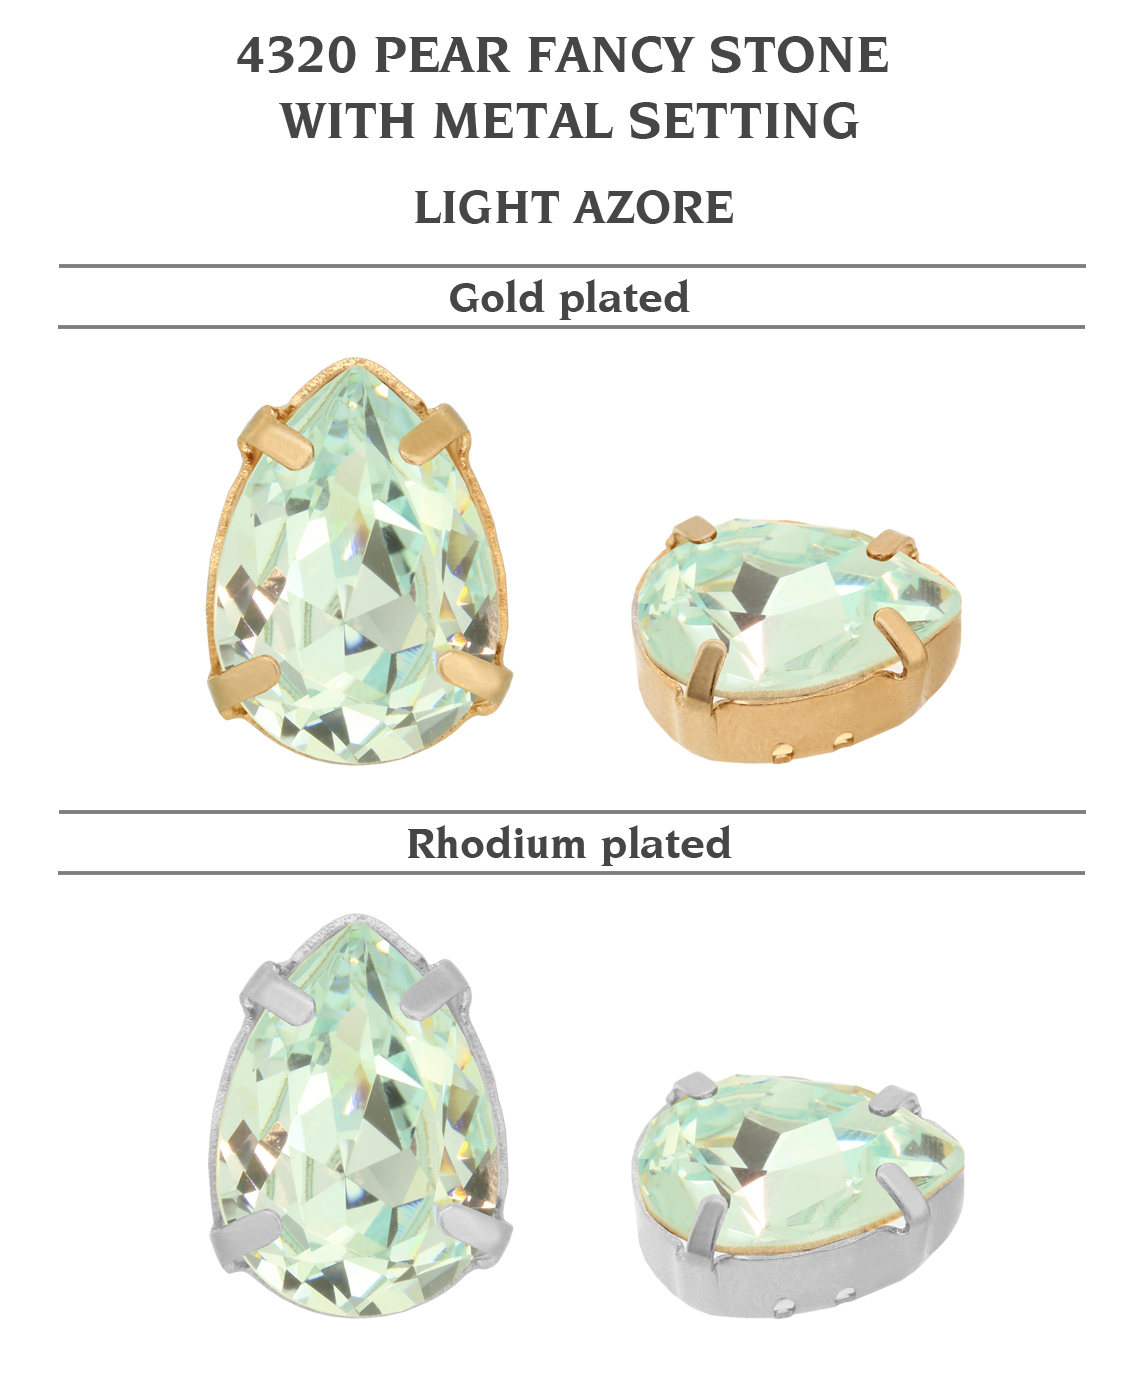 Genuine-SWAROVSKI-4320-Pear-Fancy-Stones-with-Sew-On-Metal-Setting-Many-Colors miniatuur 26